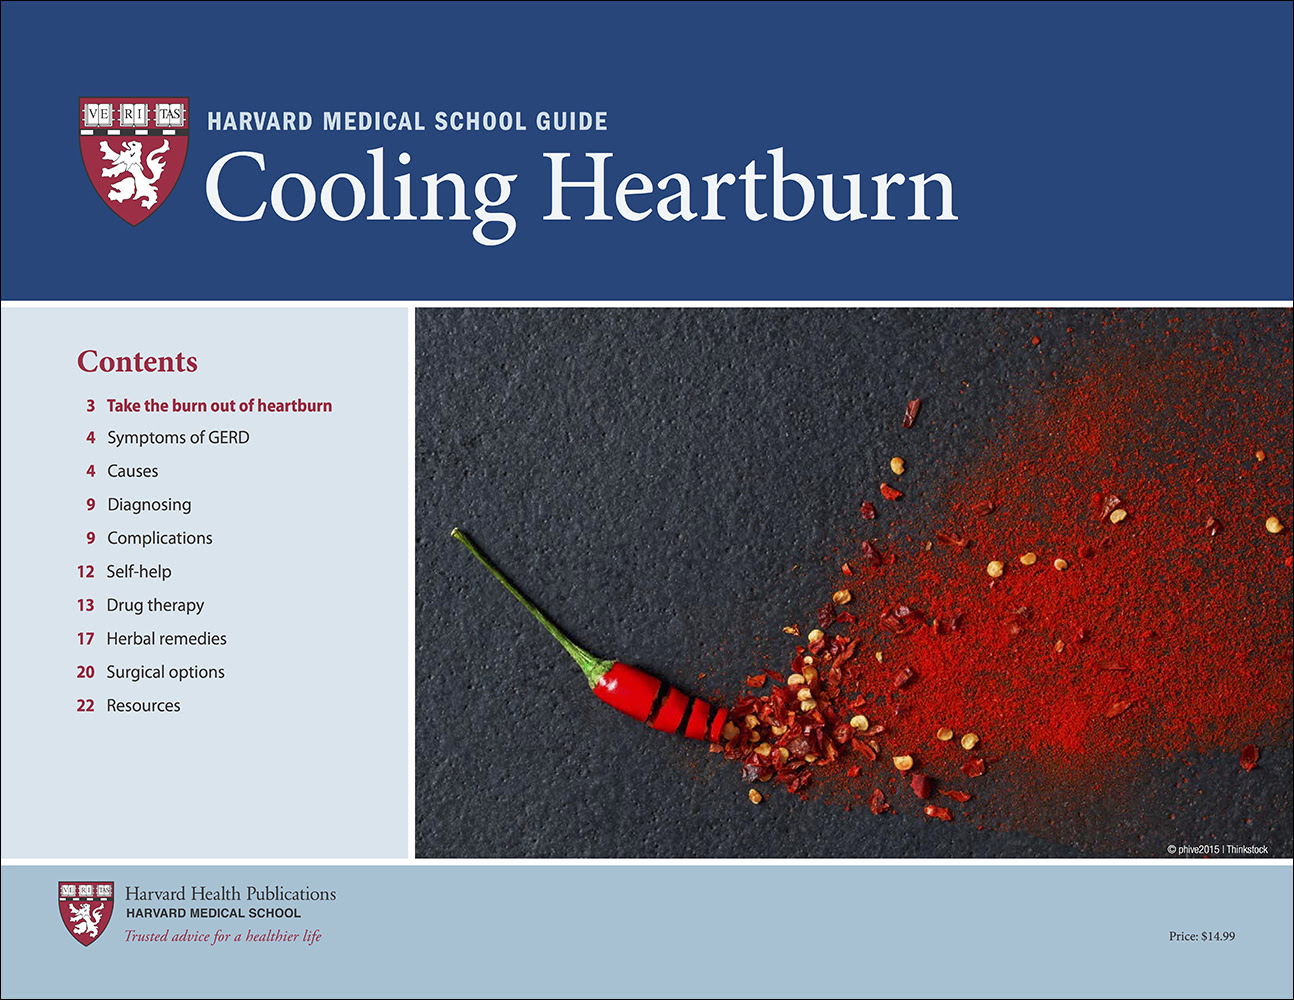 Cooling Heartburn